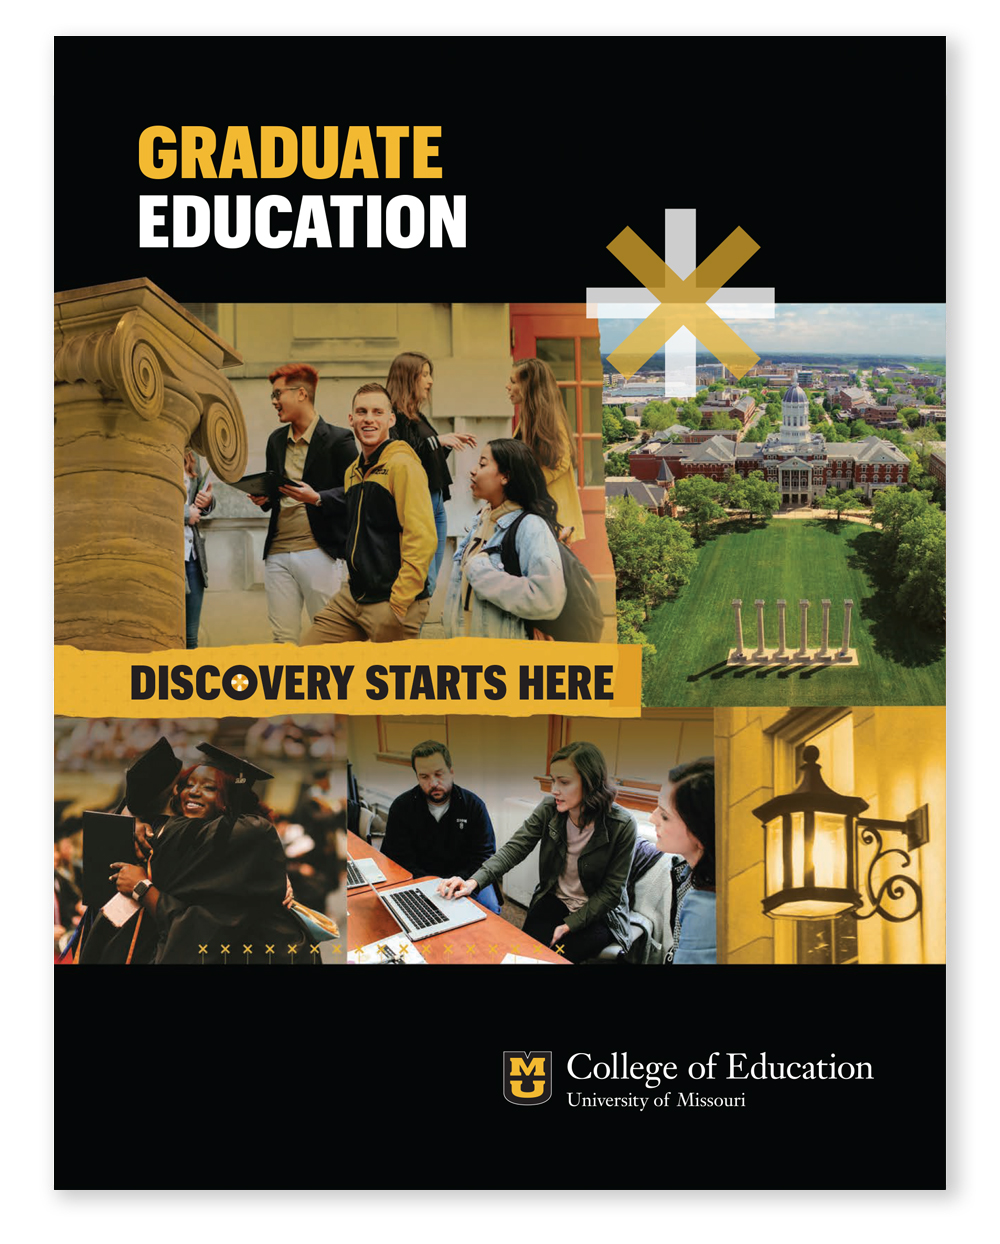 University of Missouri College of Education Graduate Studies Viewbook, Mizzou Ed Viewbook / Full Color Brochure 2019, Check out the College of Education Graduate Studies Viewbook, fast facts, academic programs, career pathways, Mizzou Ed Online, outreach with impact, graduate student support resources, degrees & emphasis areas, quotes from current students, contact info